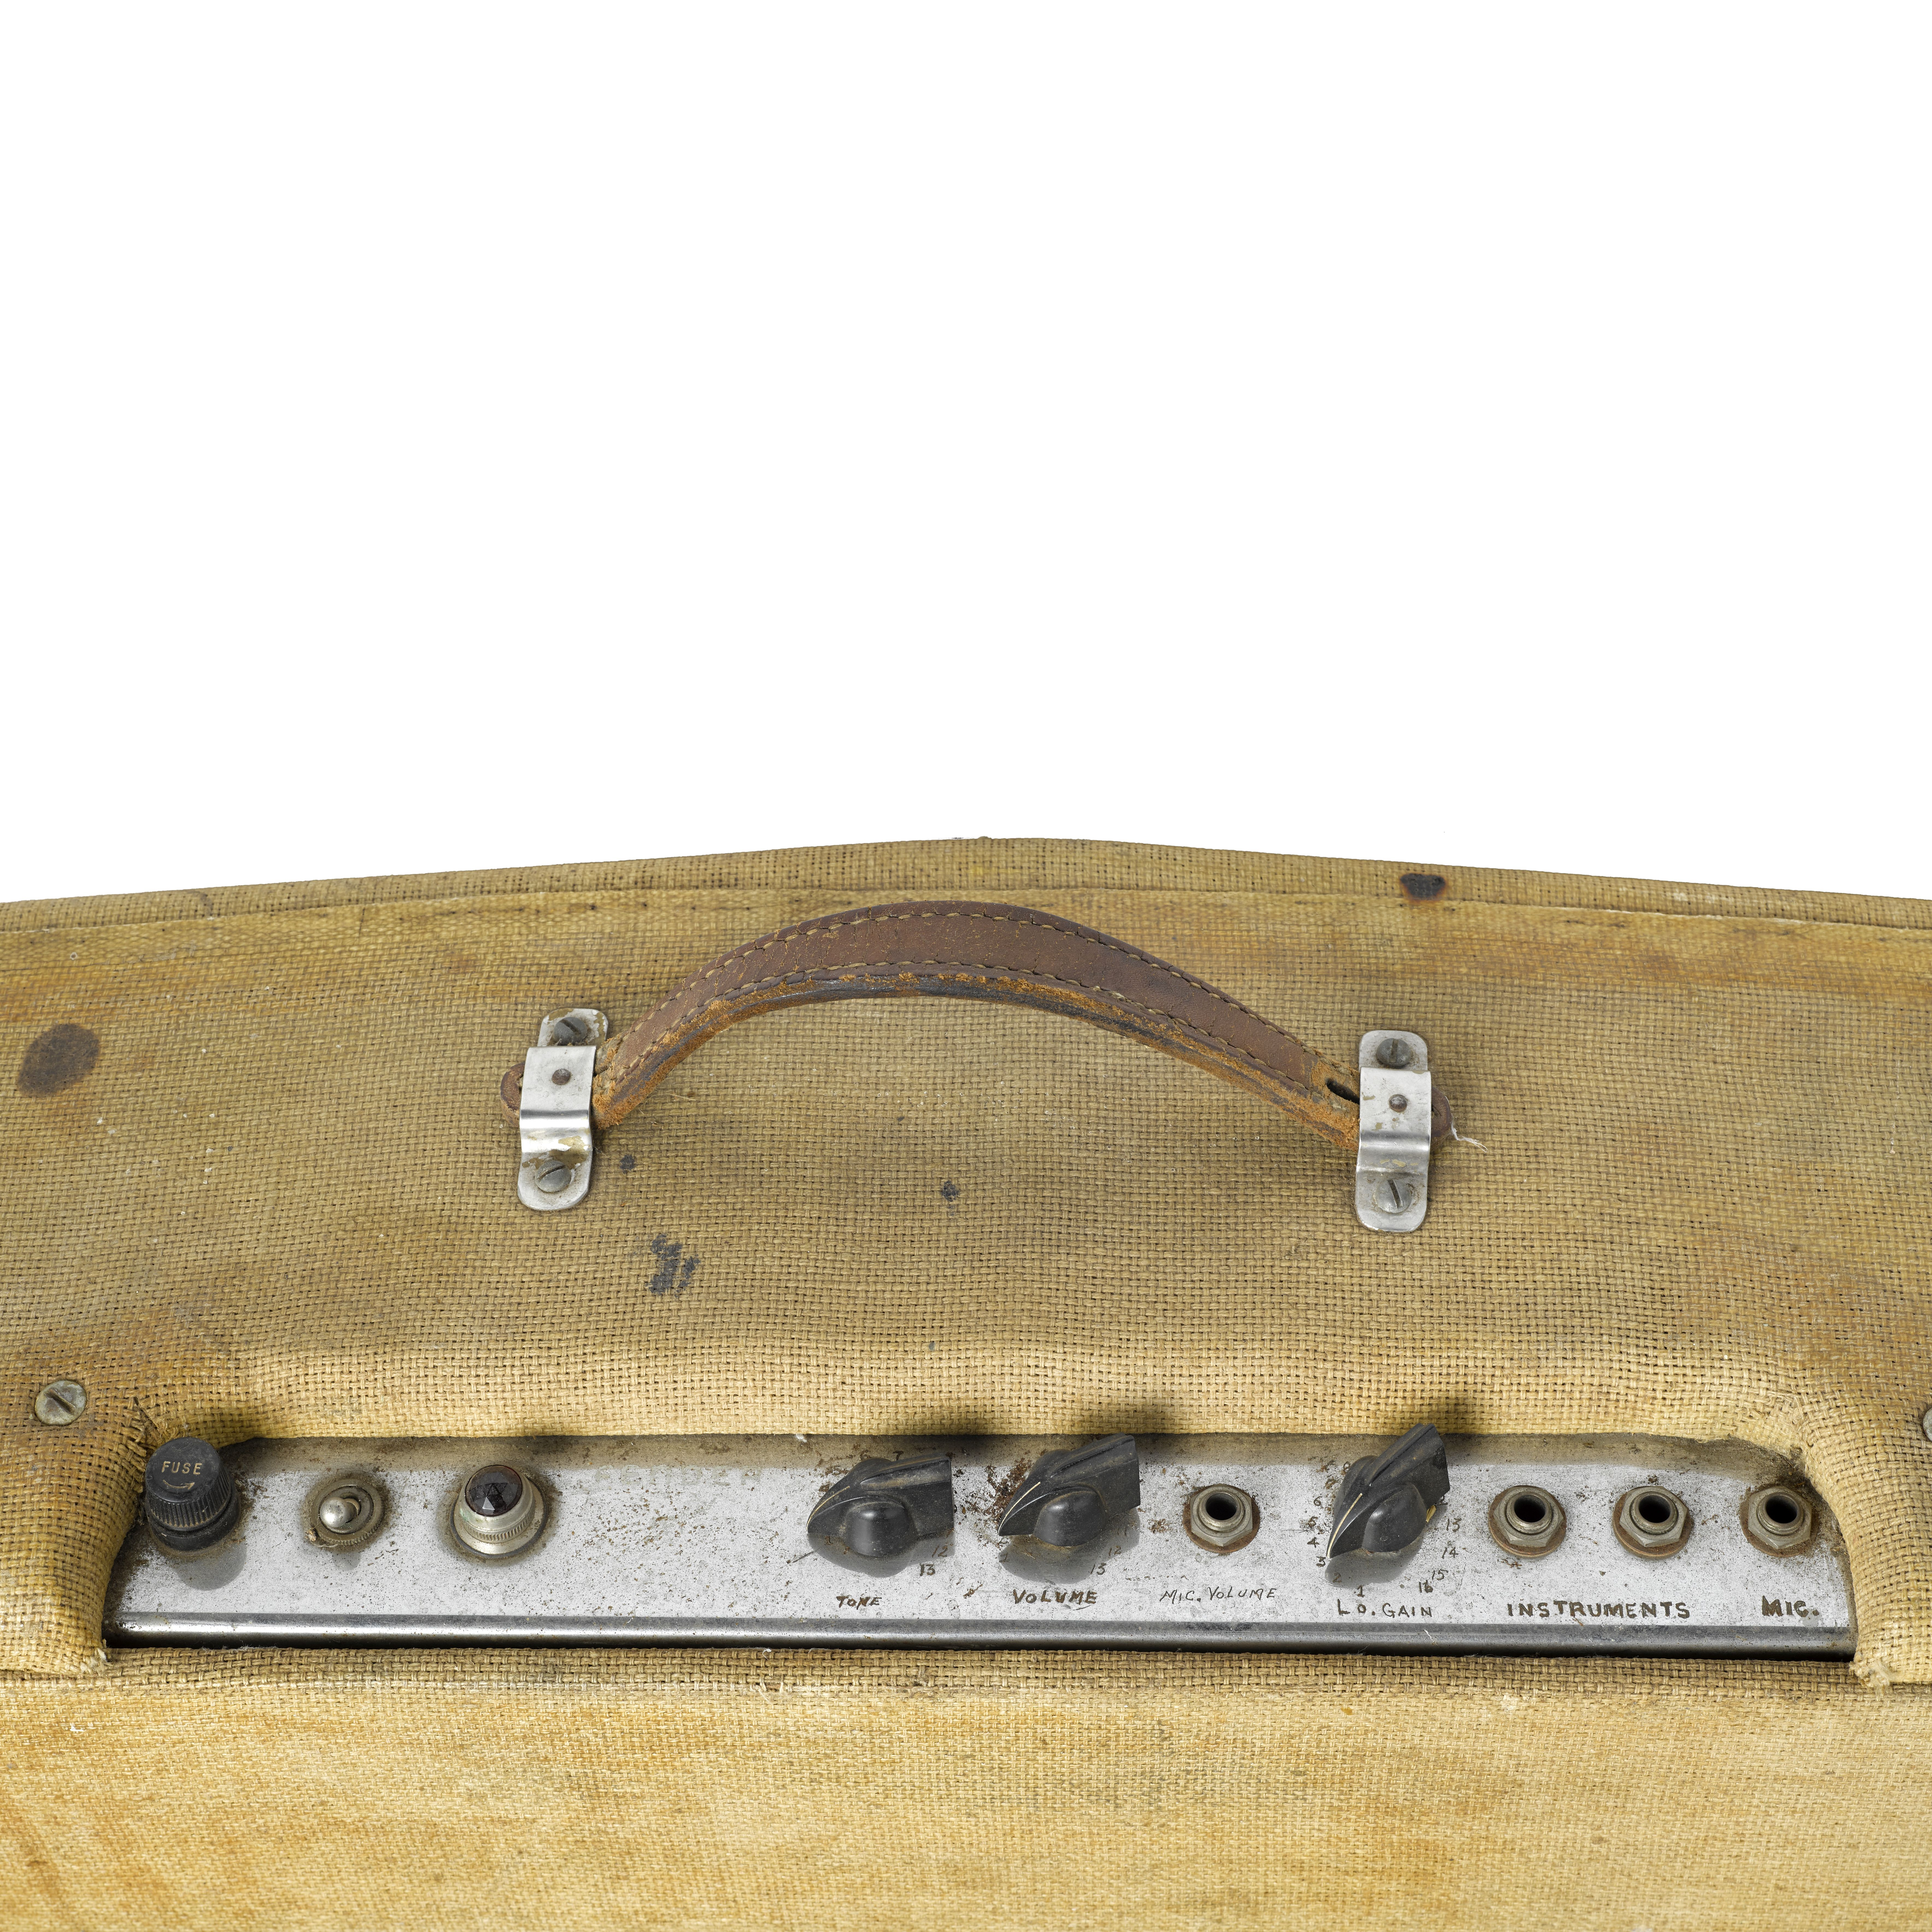 Lot 329 - AN EARLY FENDER DUAL PROFESSIONAL SILVERFACE AMPLIFIER OWNED AND USED BY JERRY GARCIA